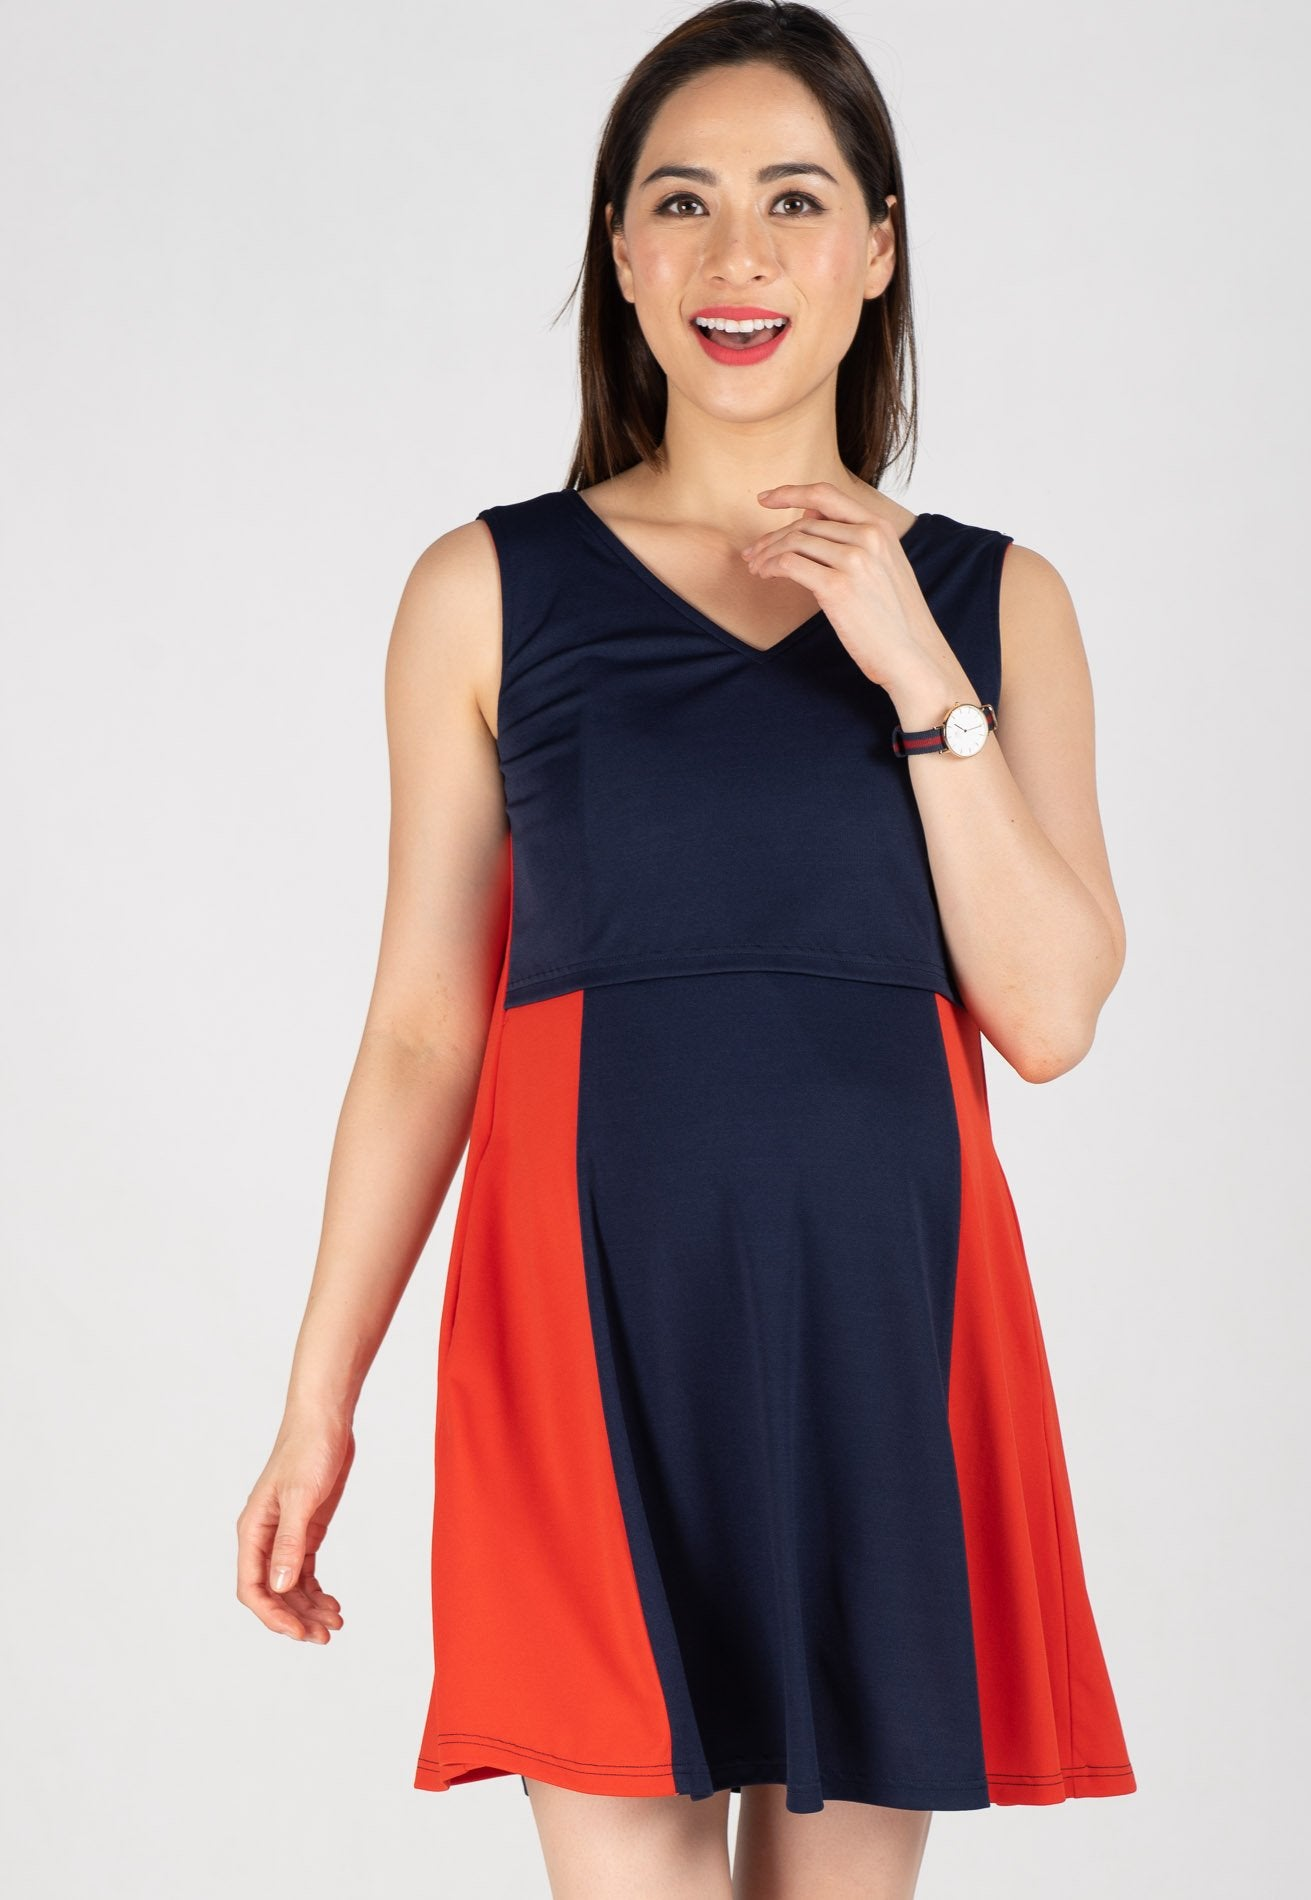 Two Toned Swing Dress Nursing Wear Mothercot